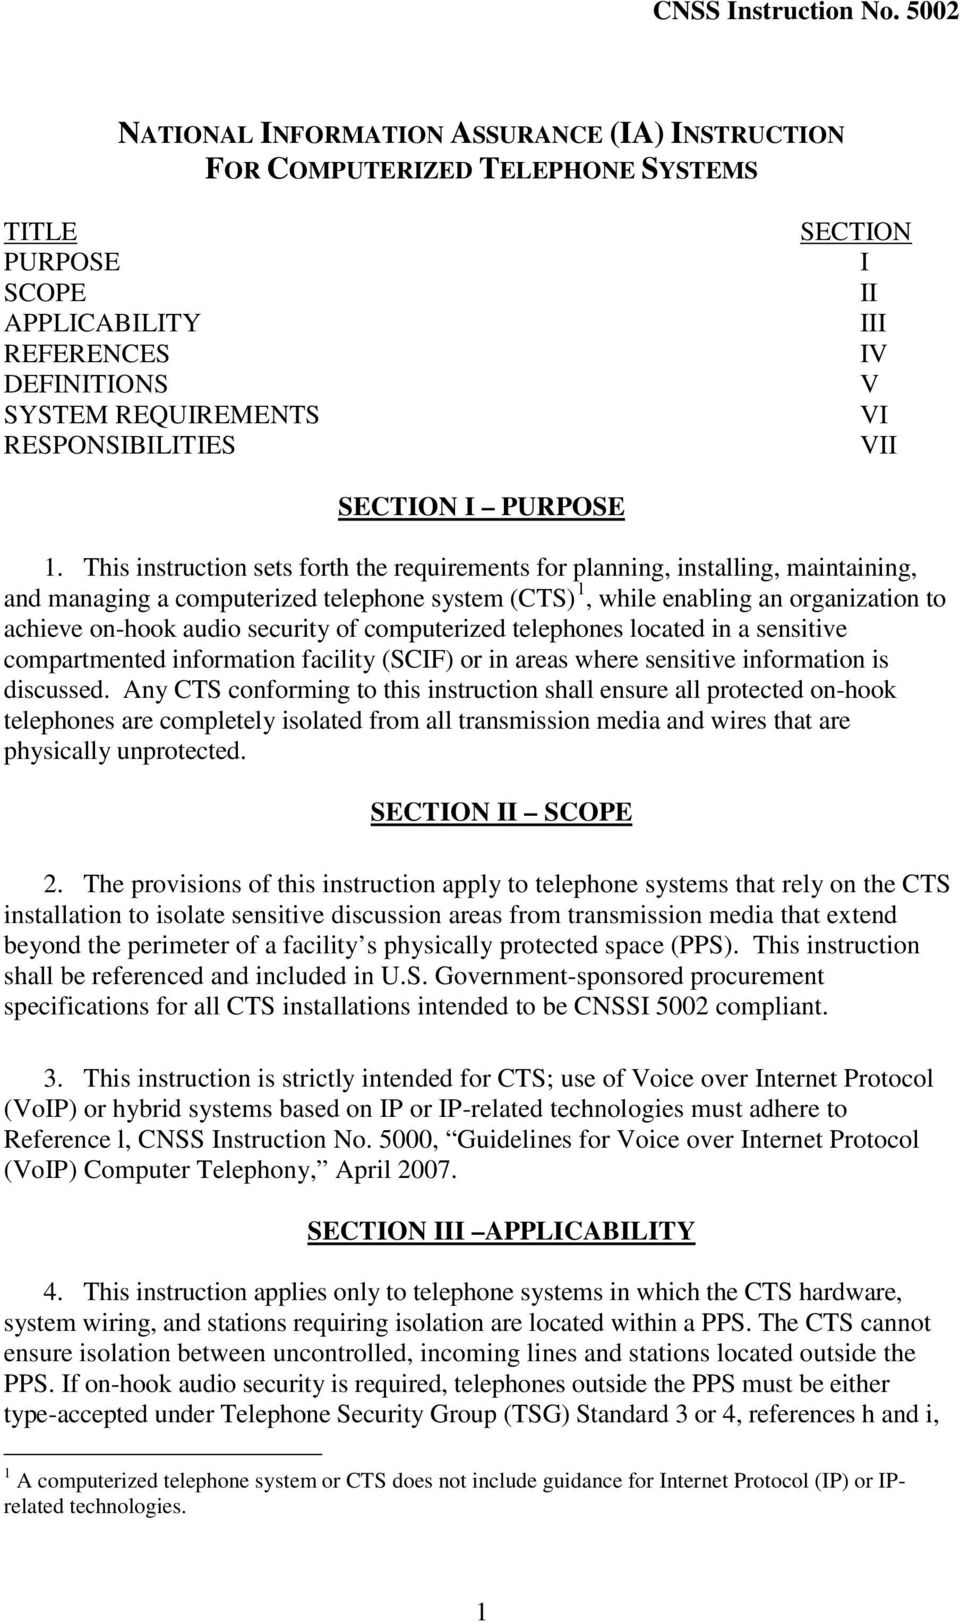 This instruction sets forth the requirements for planning, installing, maintaining, and managing a computerized telephone system (CTS) 1, while enabling an organization to achieve on-hook audio